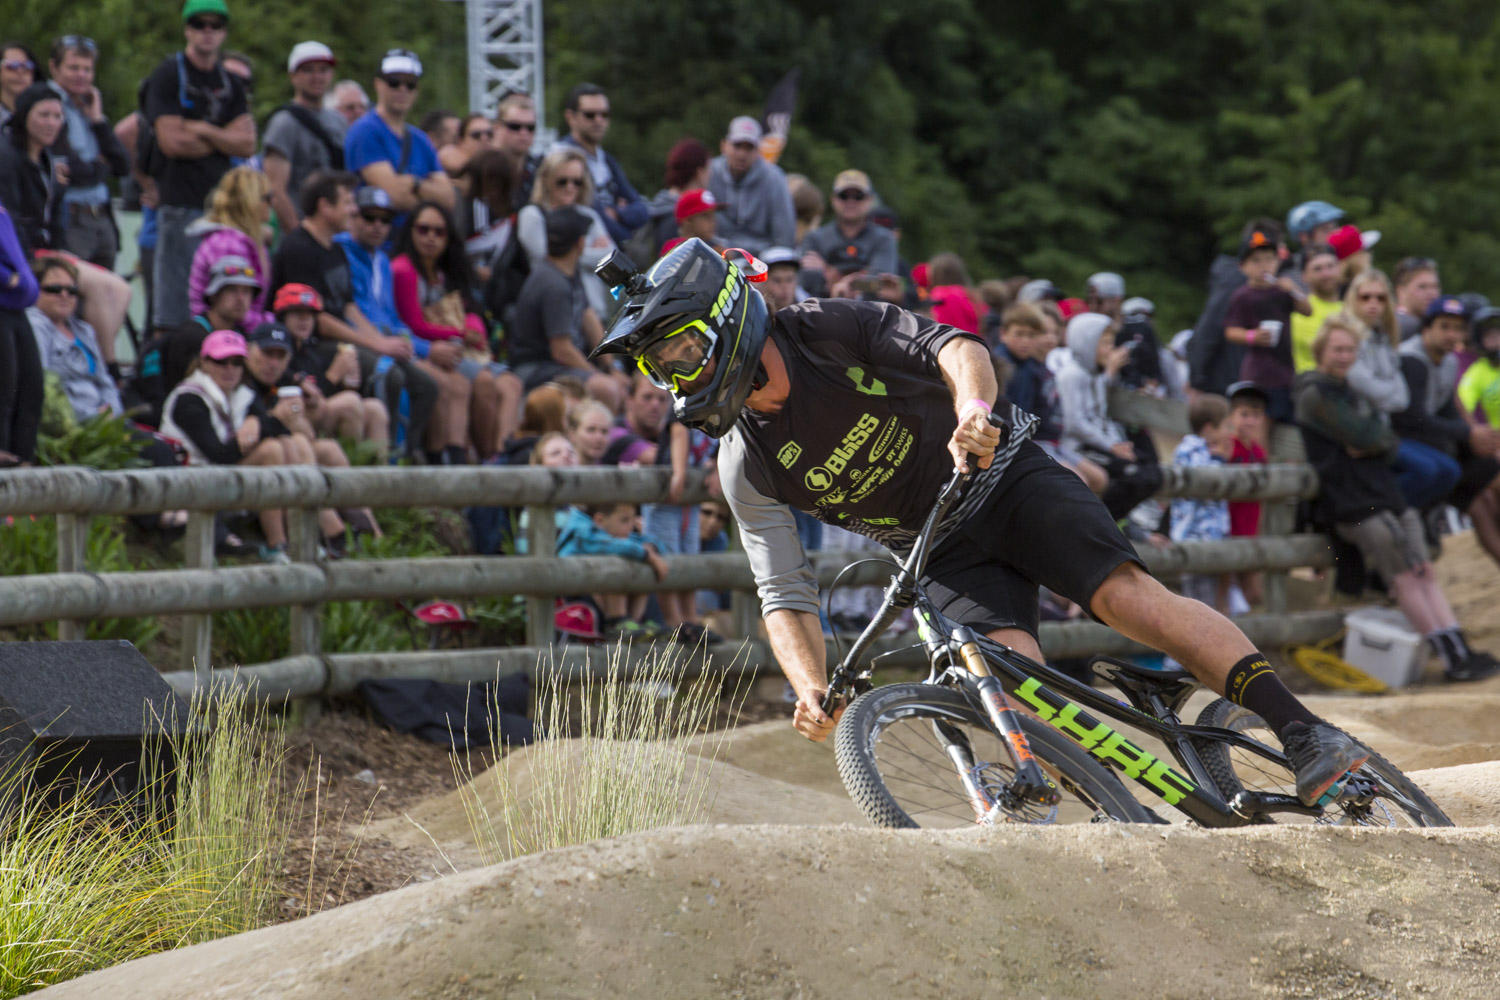 The proximity of the crowd gave the pump track one of the best atmospheres - Matt finished up 3rd